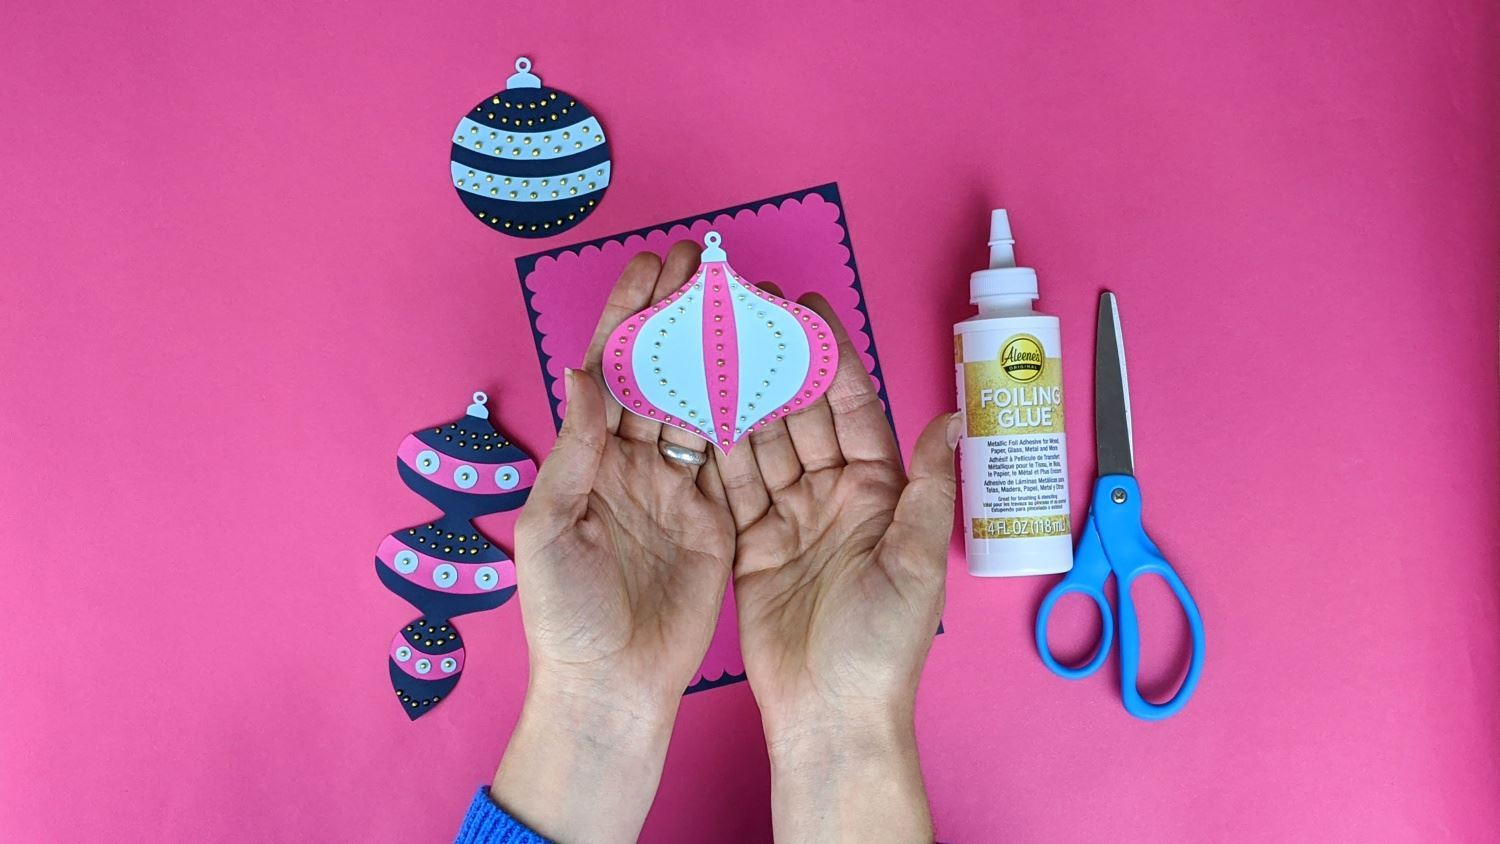 Print, cut out and glue ornament pieces